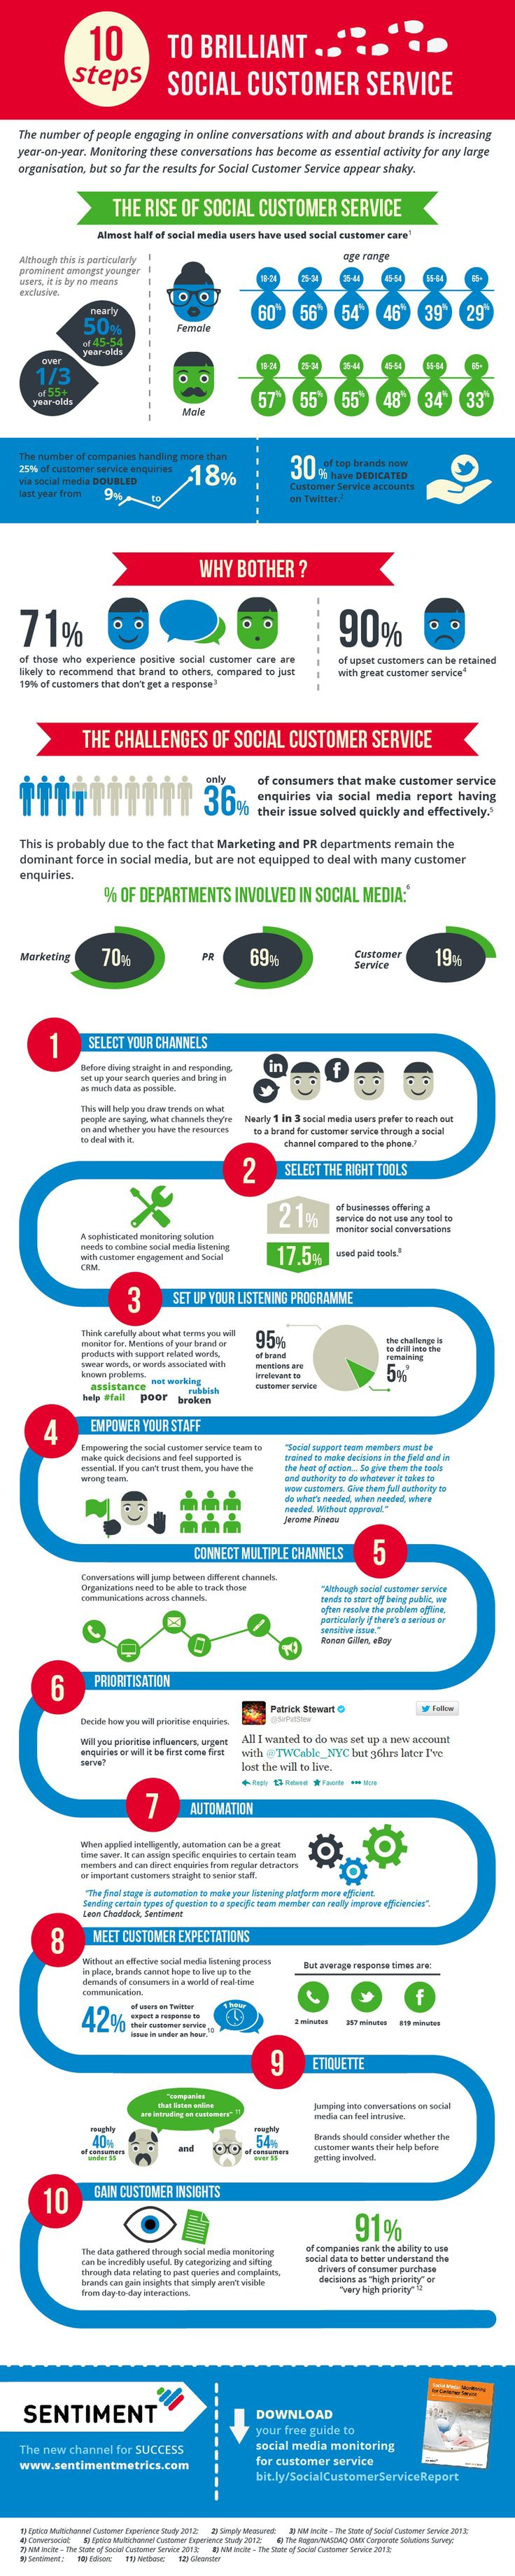 10 Steps to Brilliant Social Customer Service: 30% of Big Brands Now Have Customer Service on Twitter (Infographic)